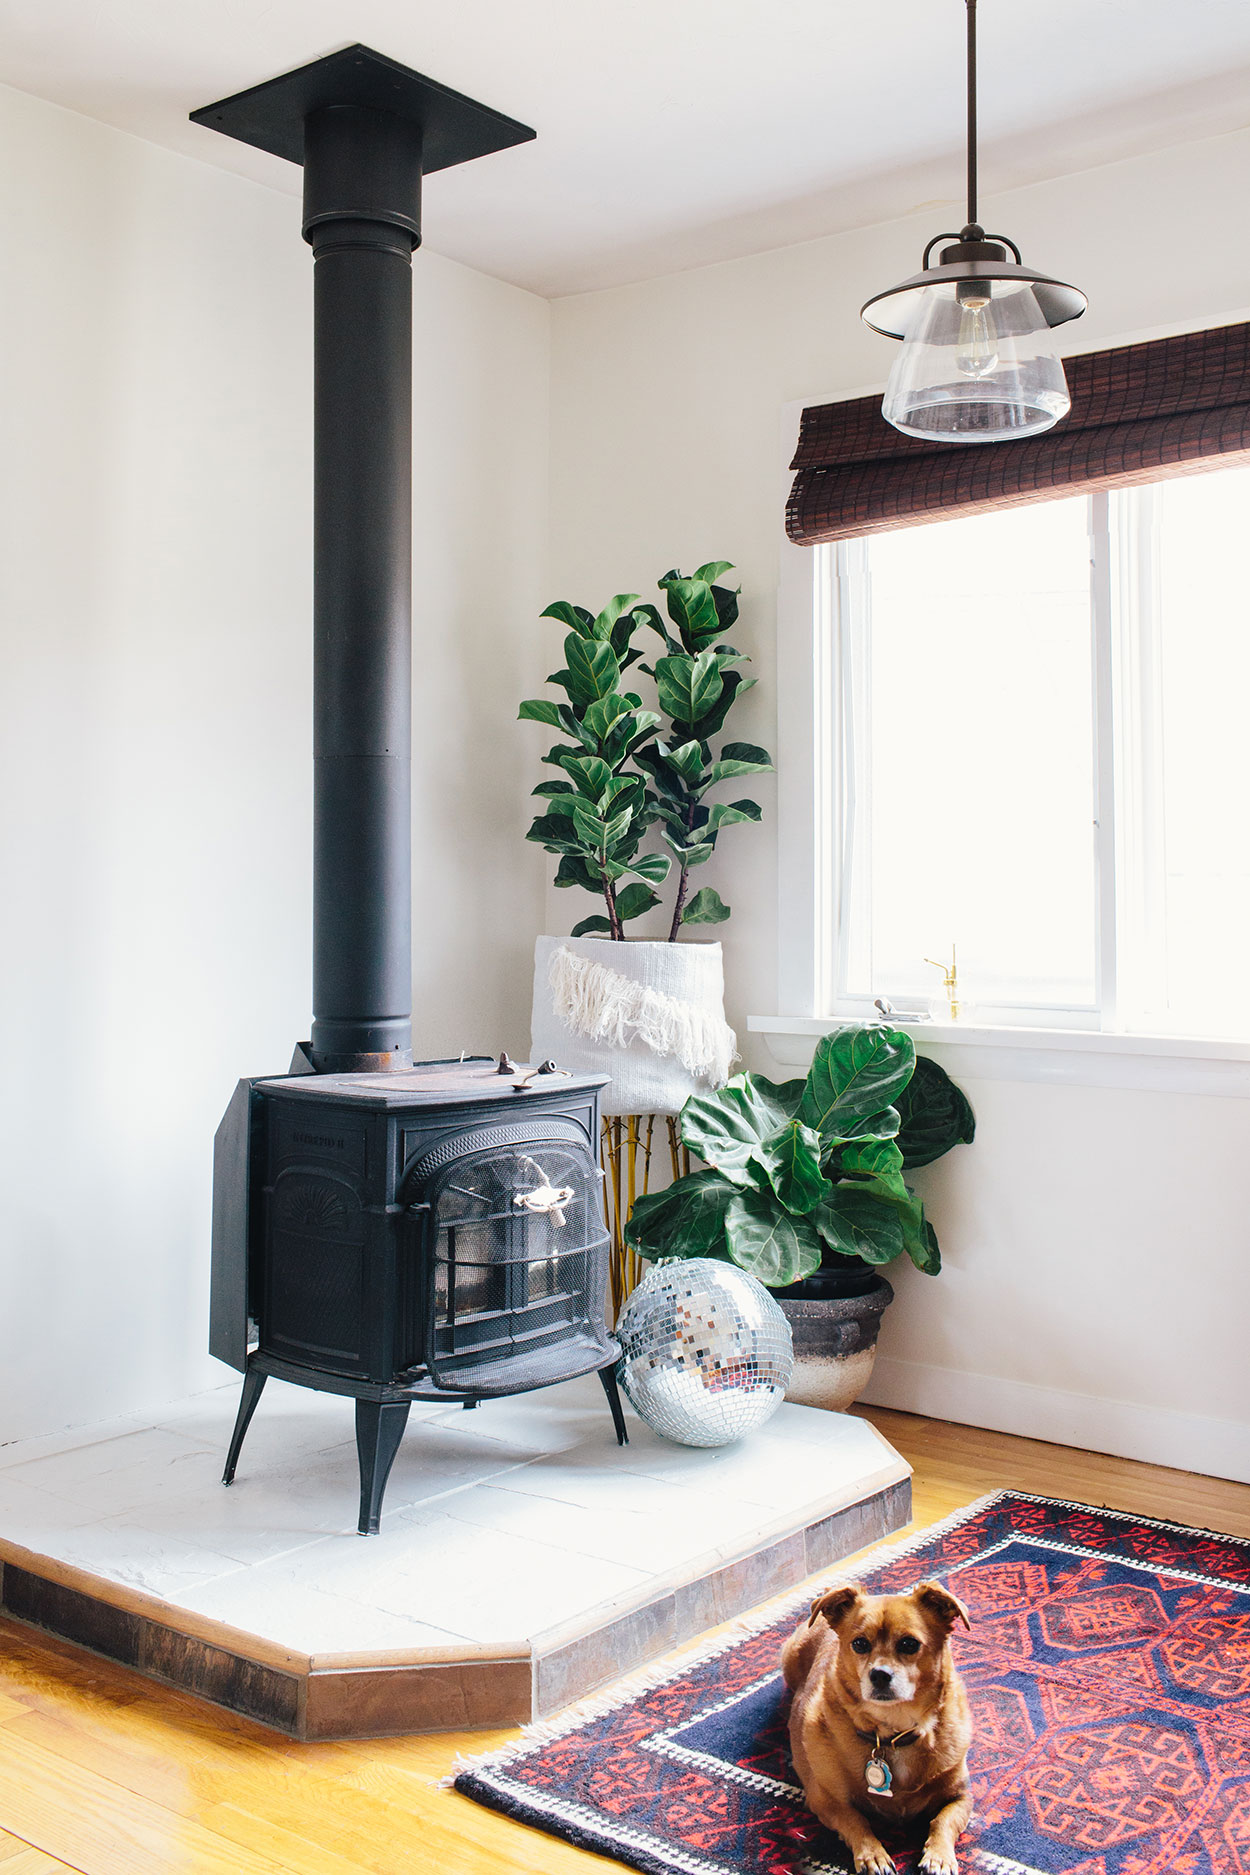 #farmhousedialfano living room / circa early 2015 on design*sponge / photo by  joyelle west